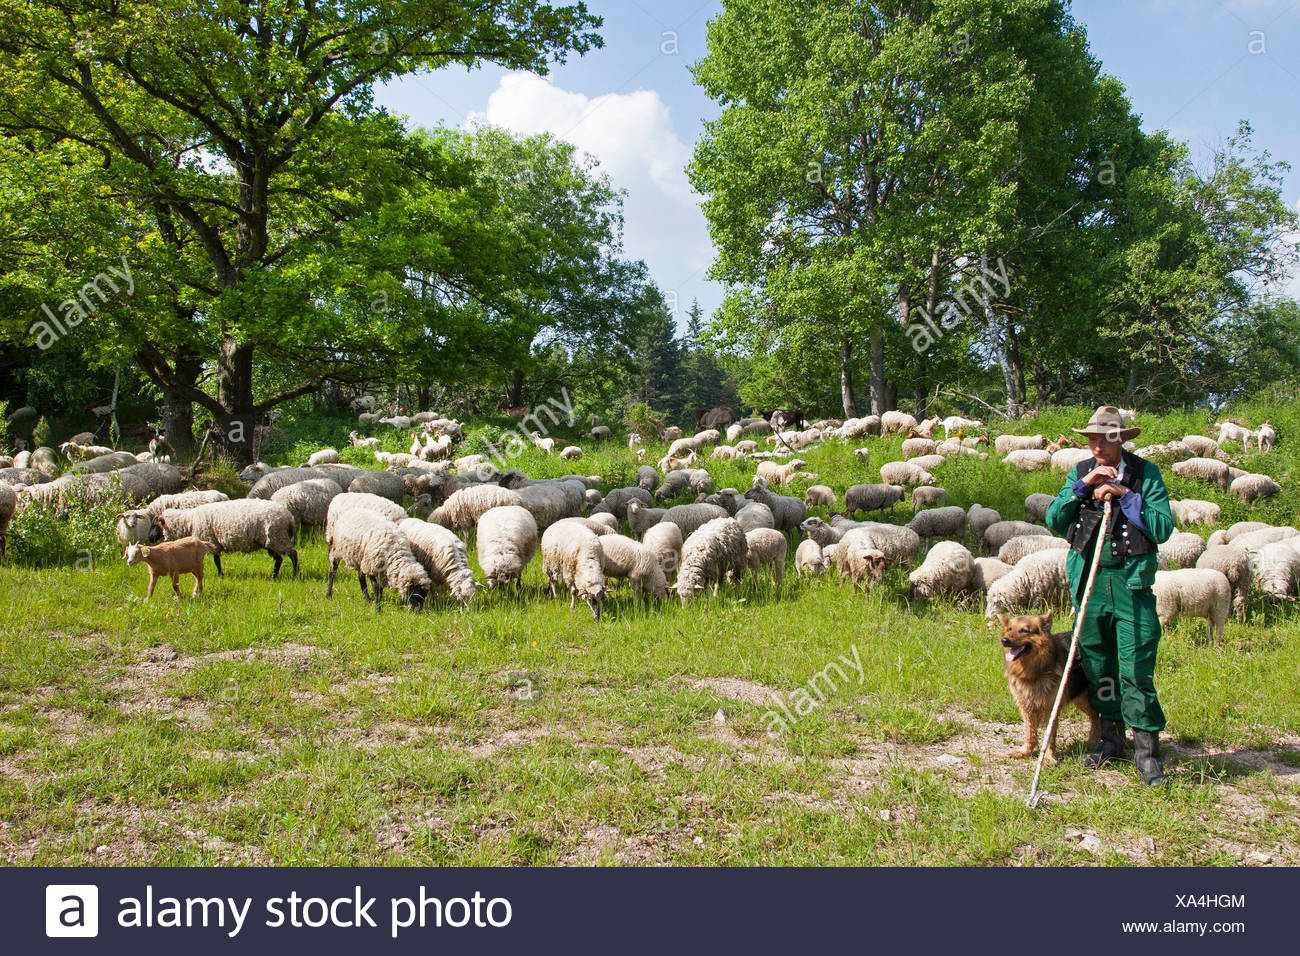 Merino sheep (Ovis ammon f. aries), sheepherd tending with a sheepdog a flock of sheep , Germany - Stock Image